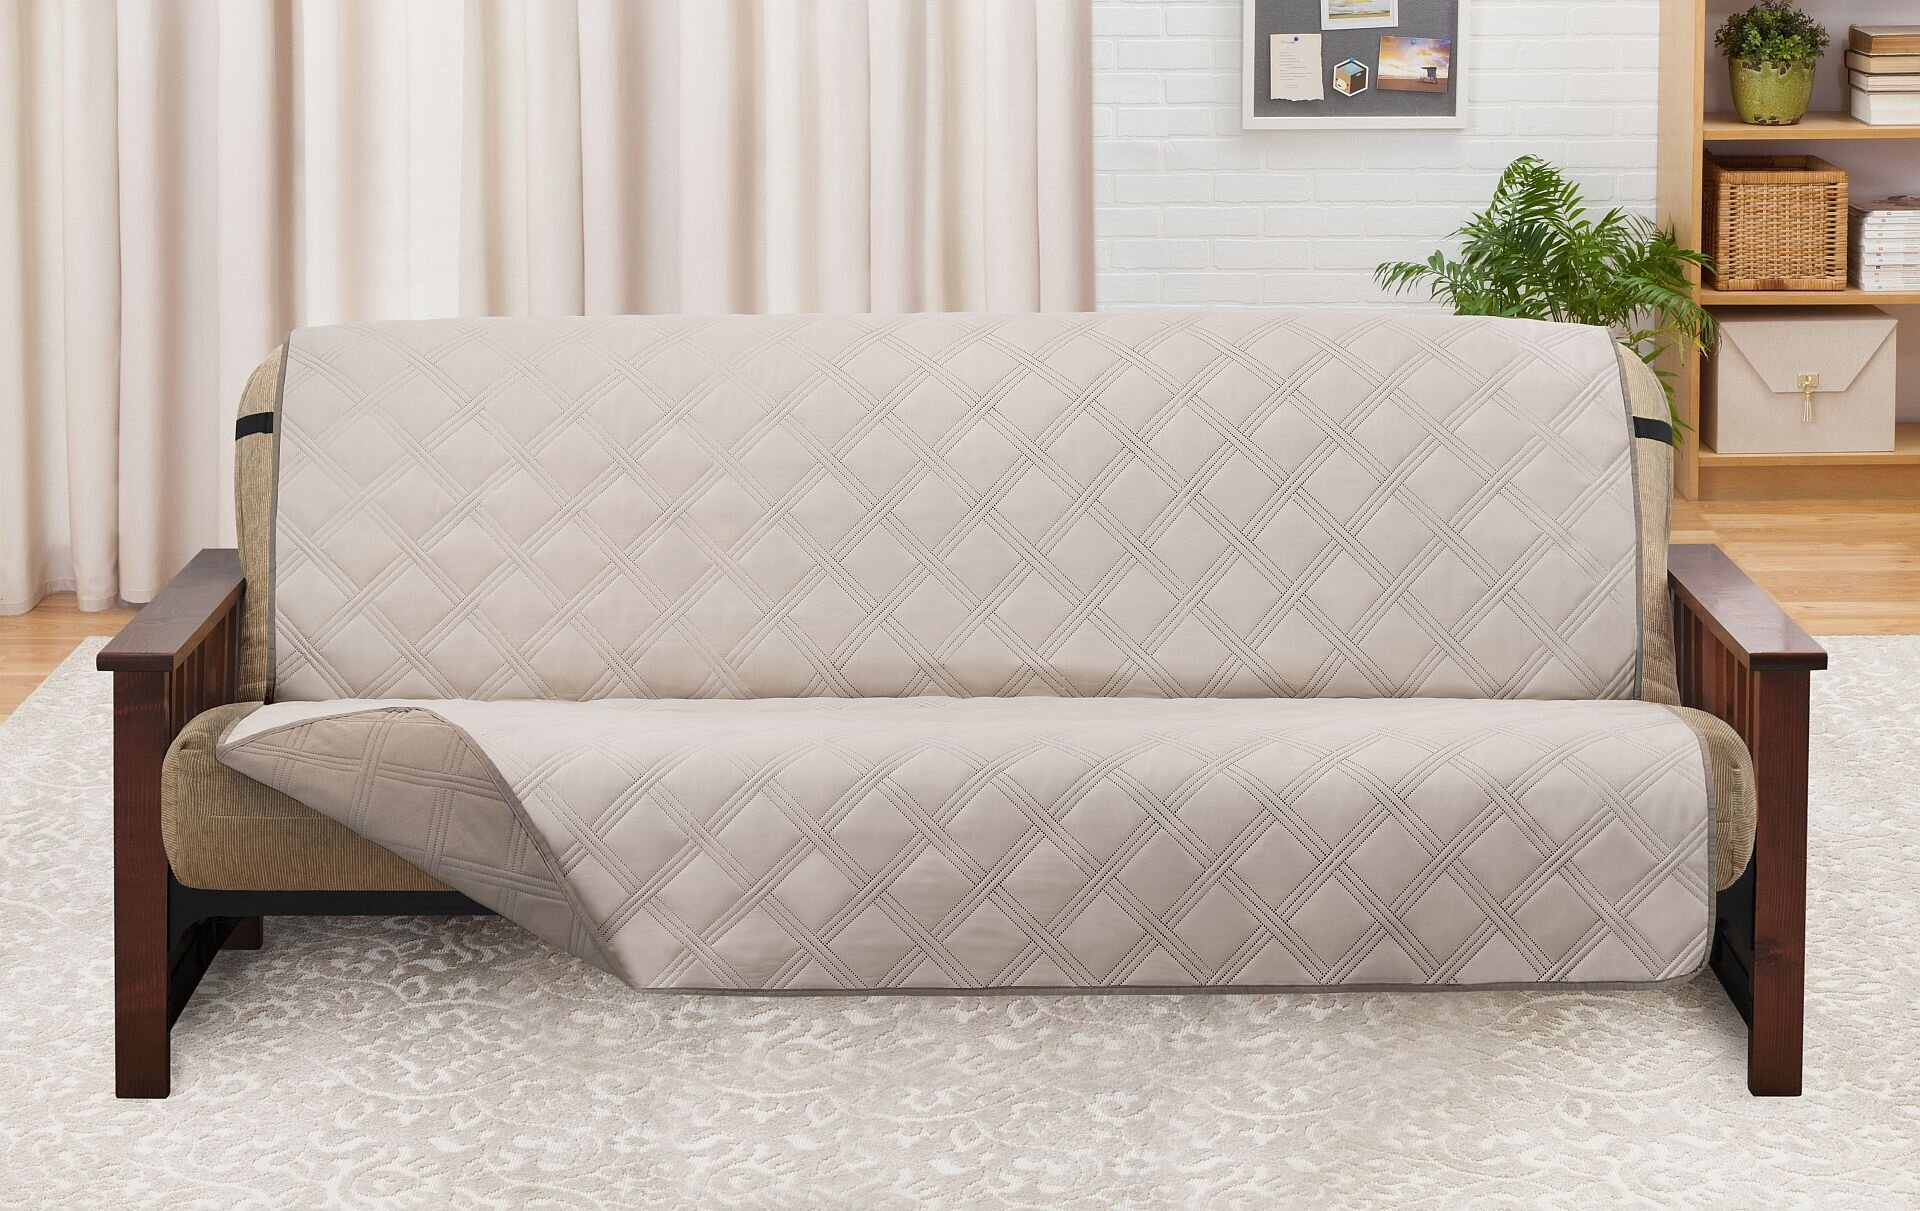 Futon Pet Friendly Slipcovers You Ll Love In 2021 Wayfair